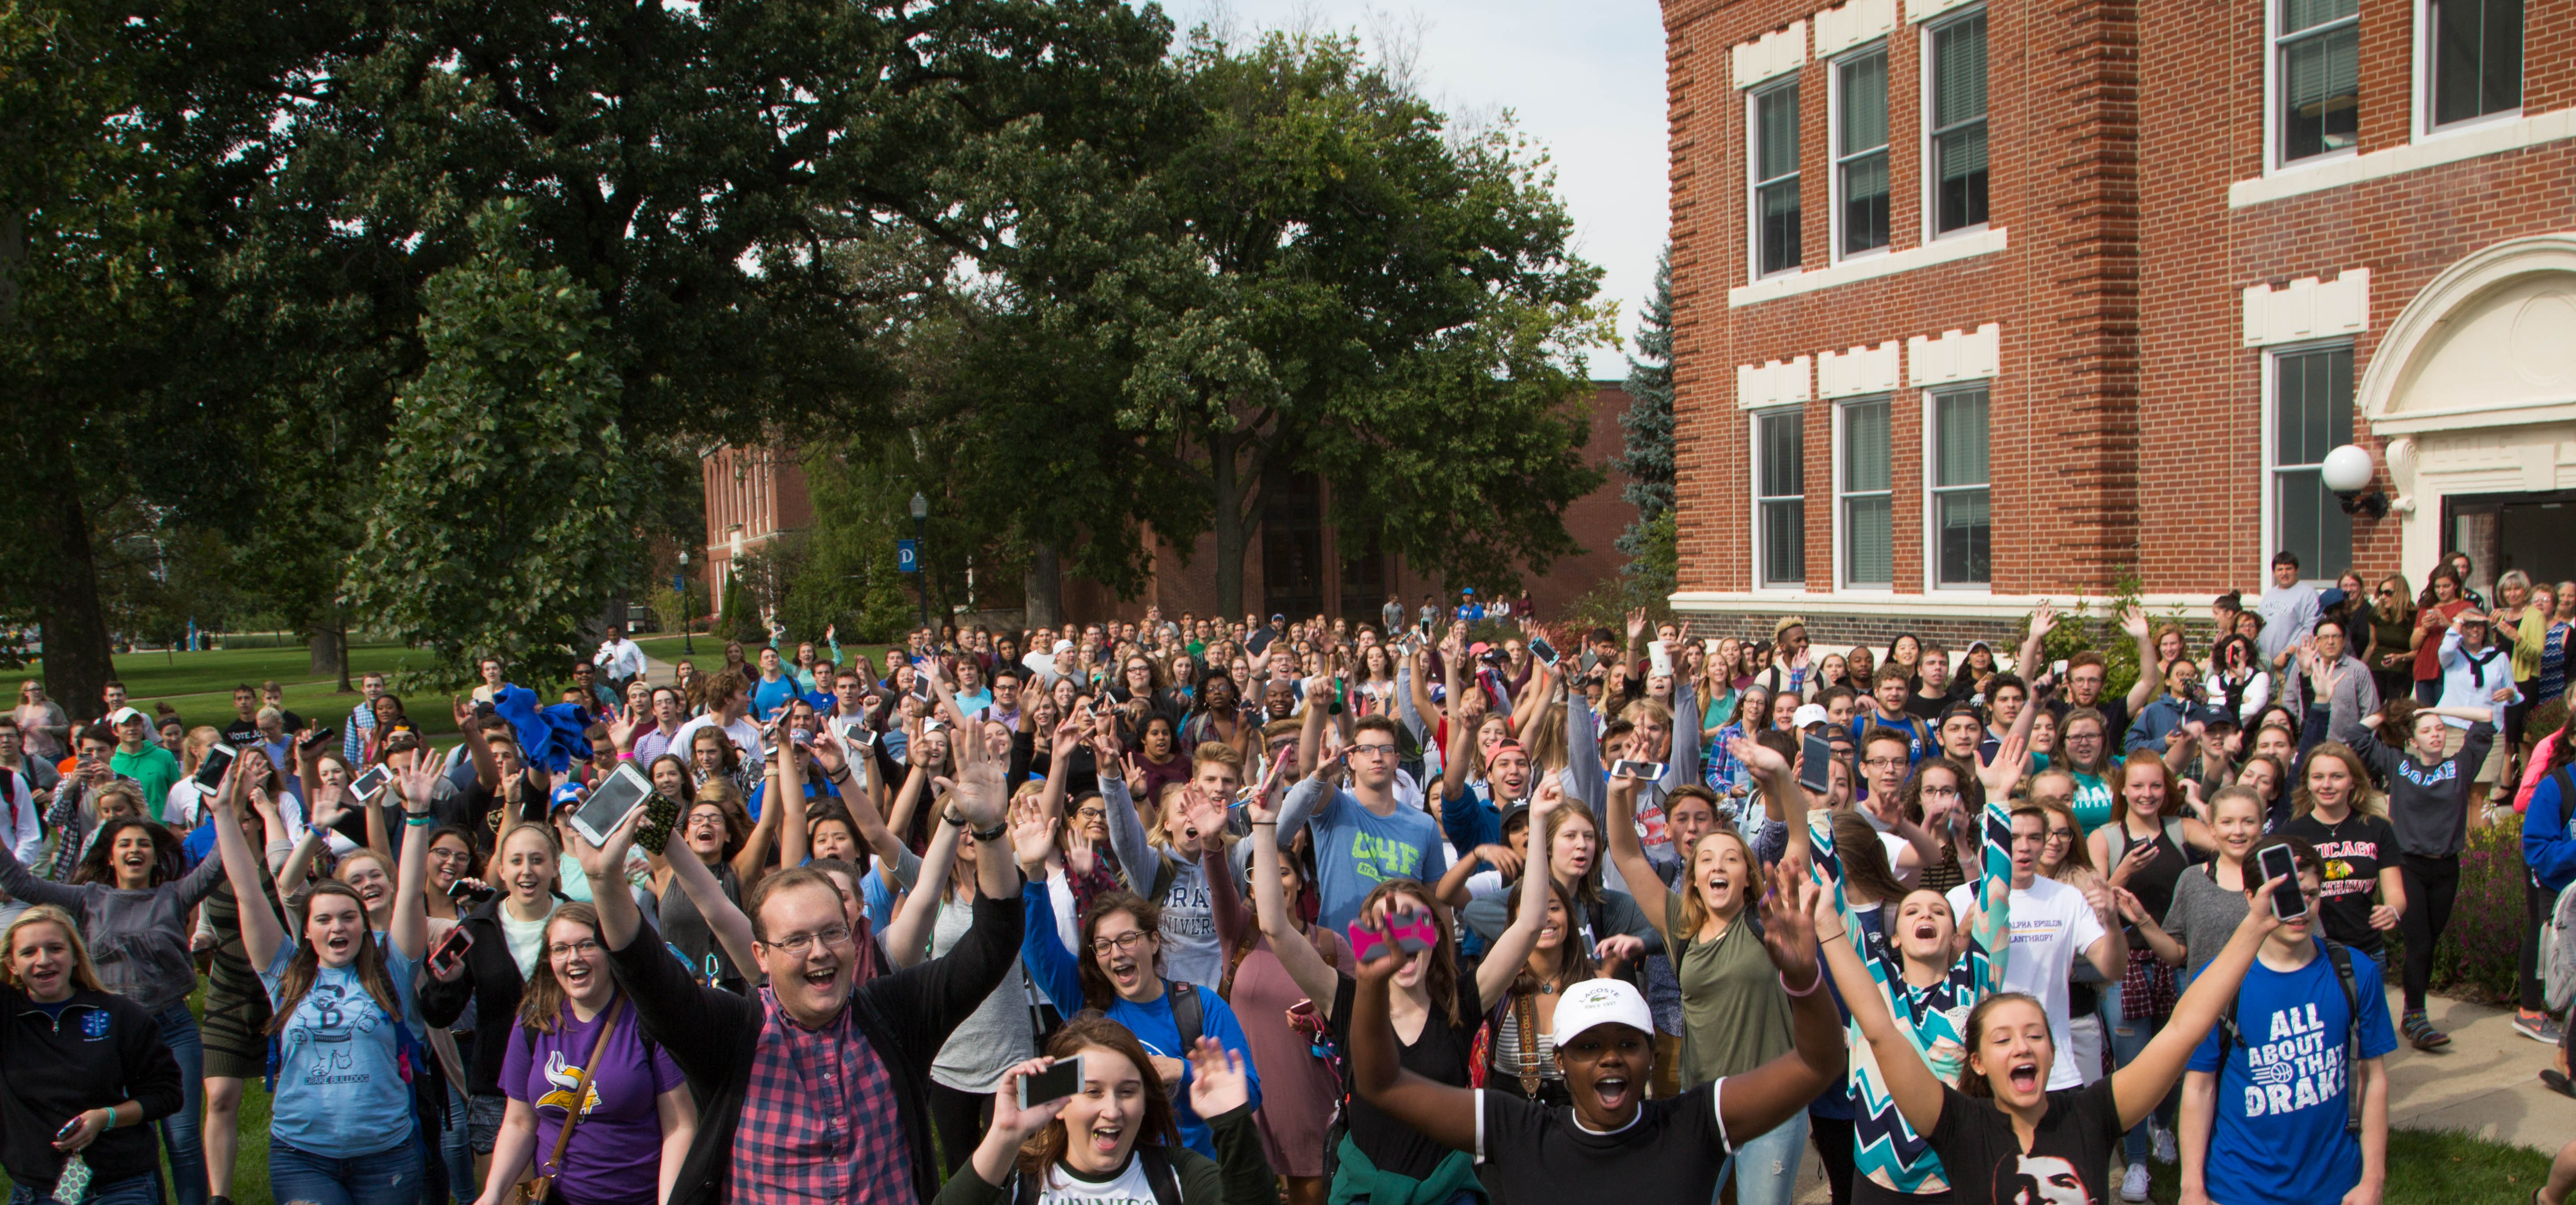 us news best colleges - HD5760×2694